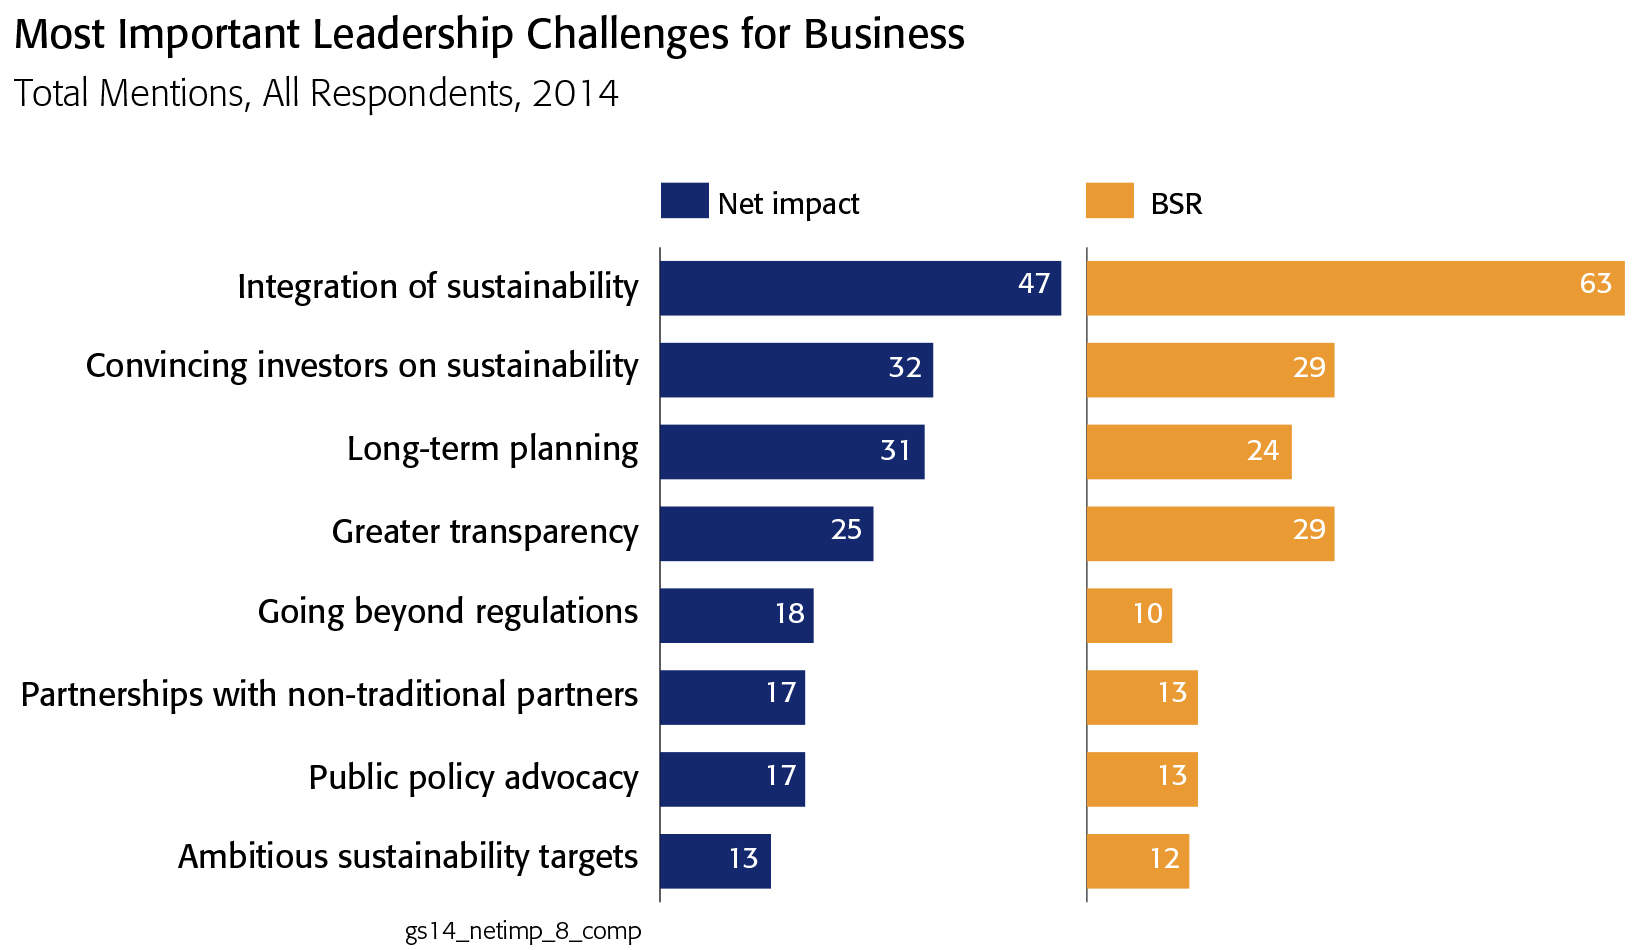 Leadership challenges chart